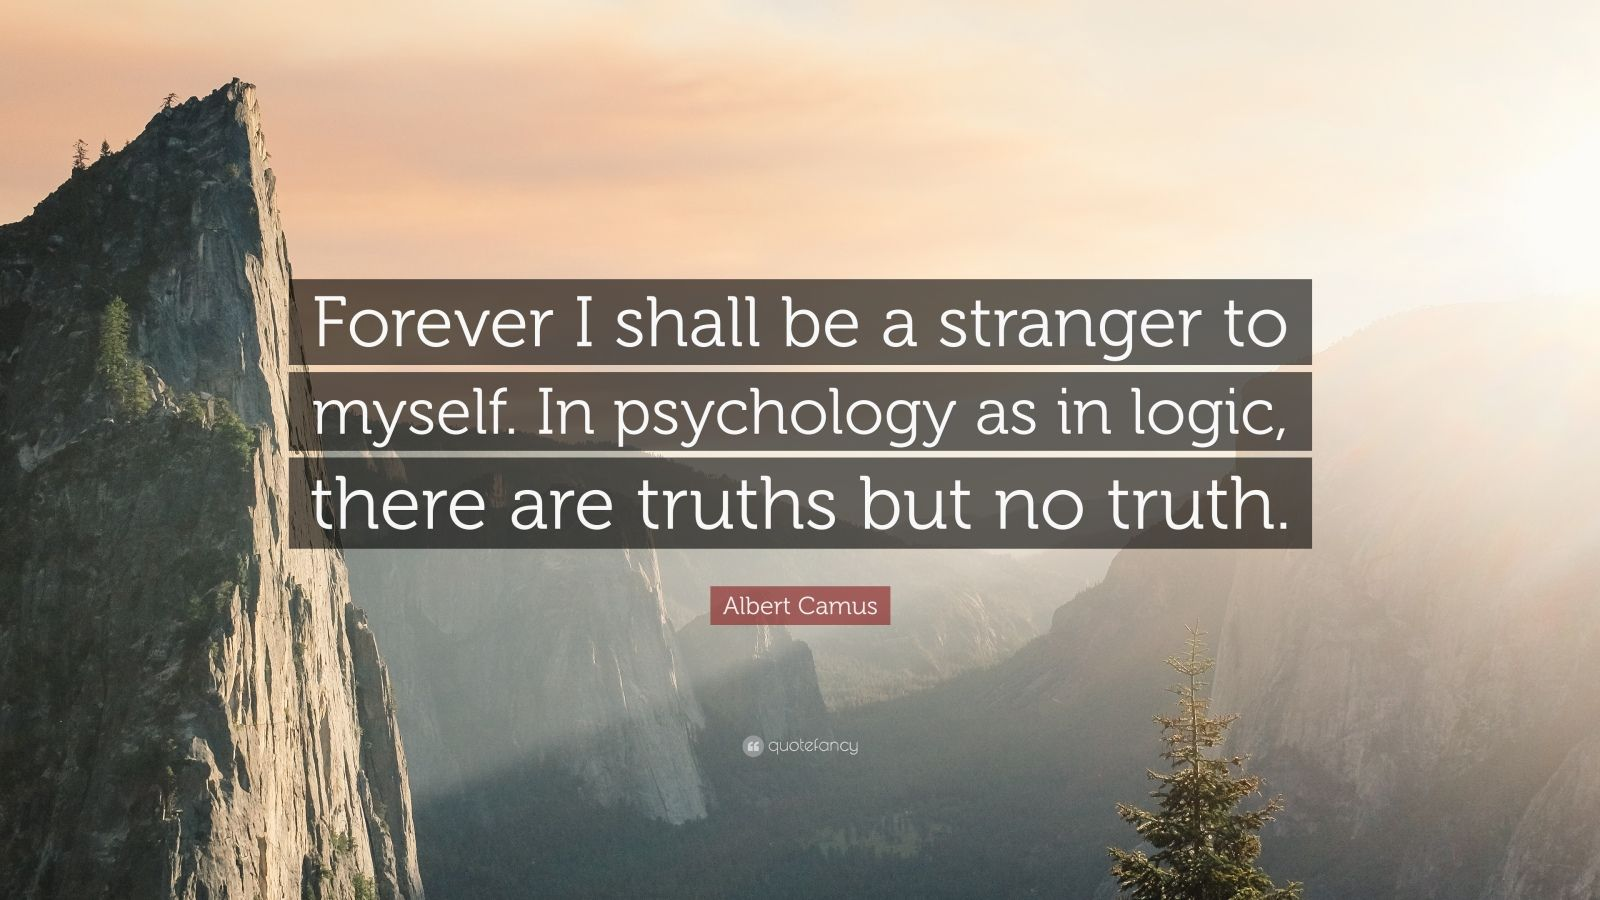 """Albert Camus Quote: """"Forever I shall be a stranger to myself. In psychology as in logic, there are truths but no truth."""""""